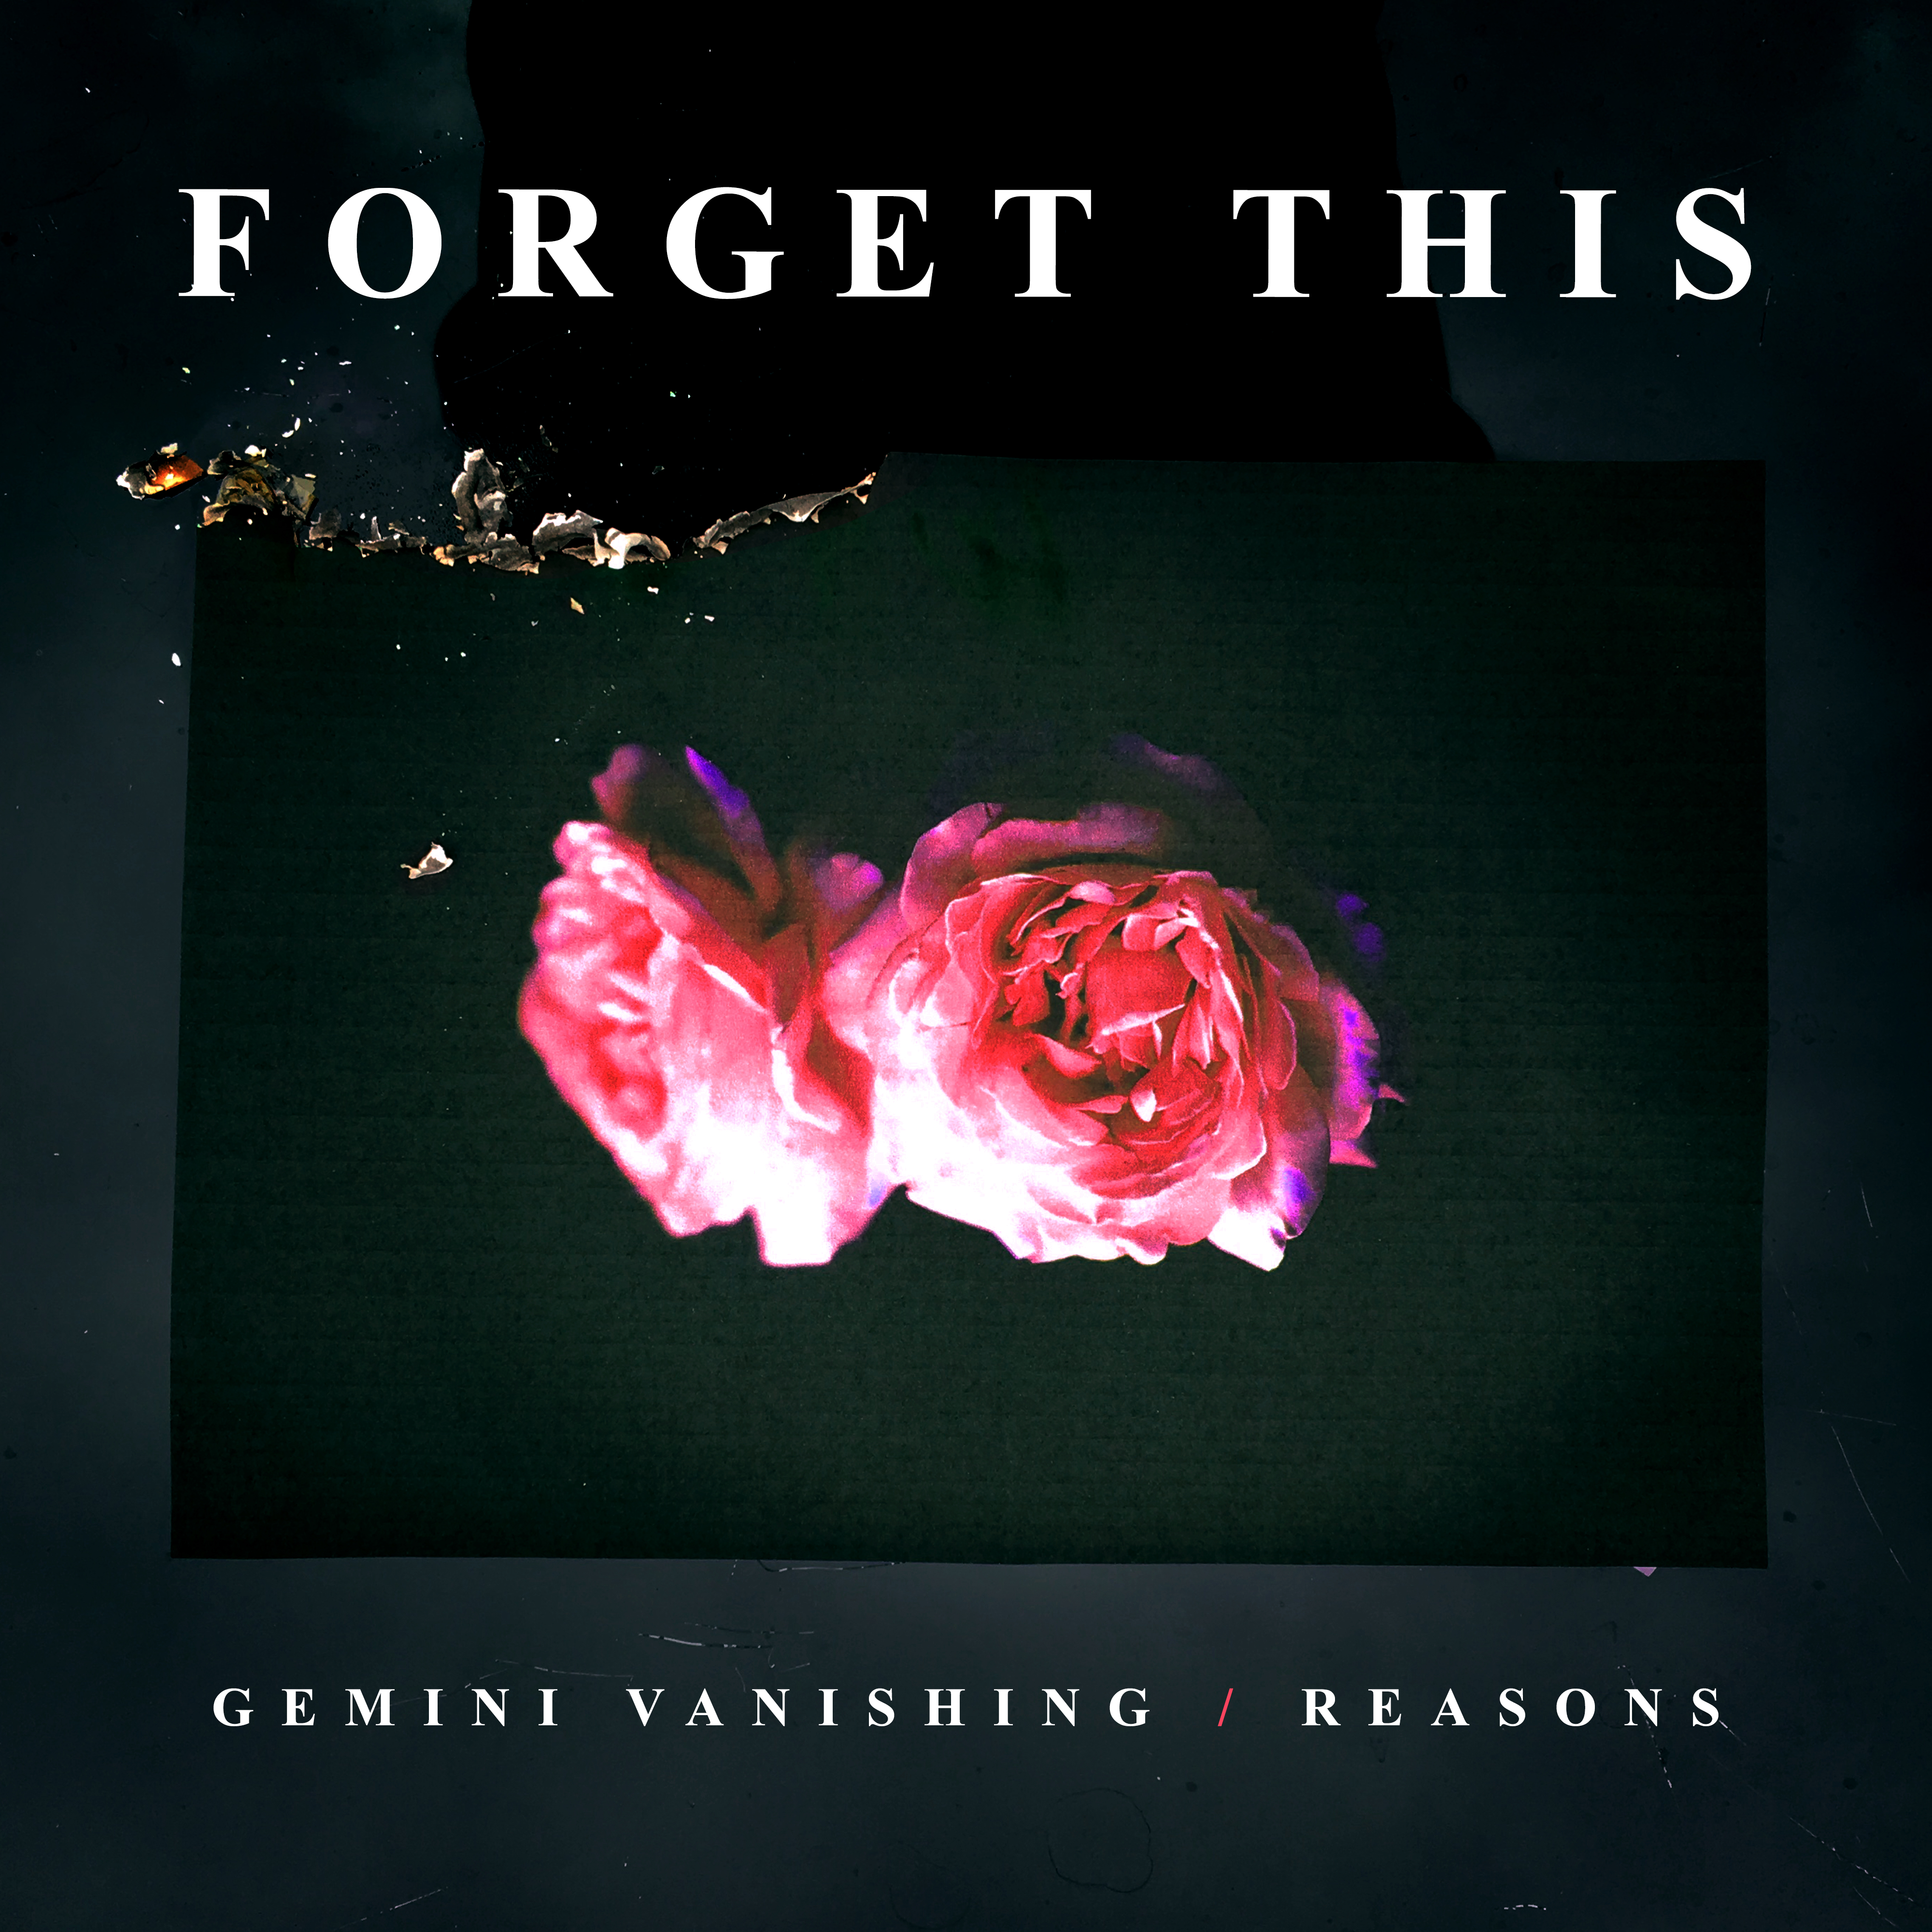 Gemini Vanishing / Reasons